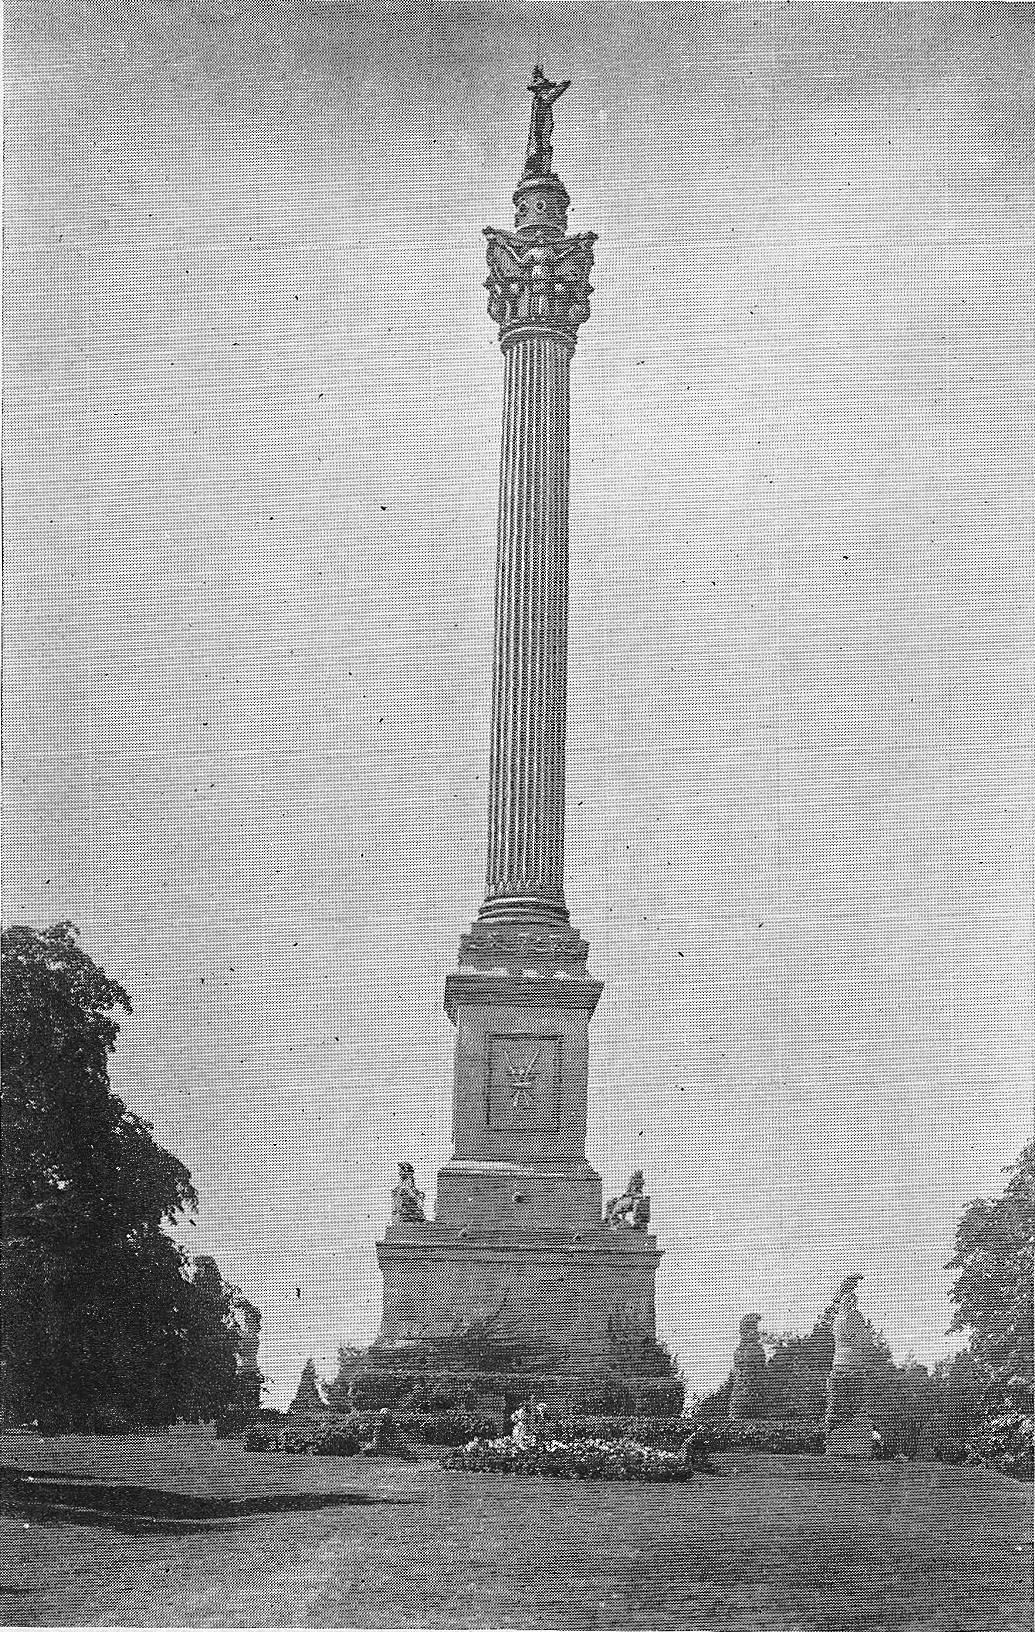 [Brock's Monument, Queenston Heights]